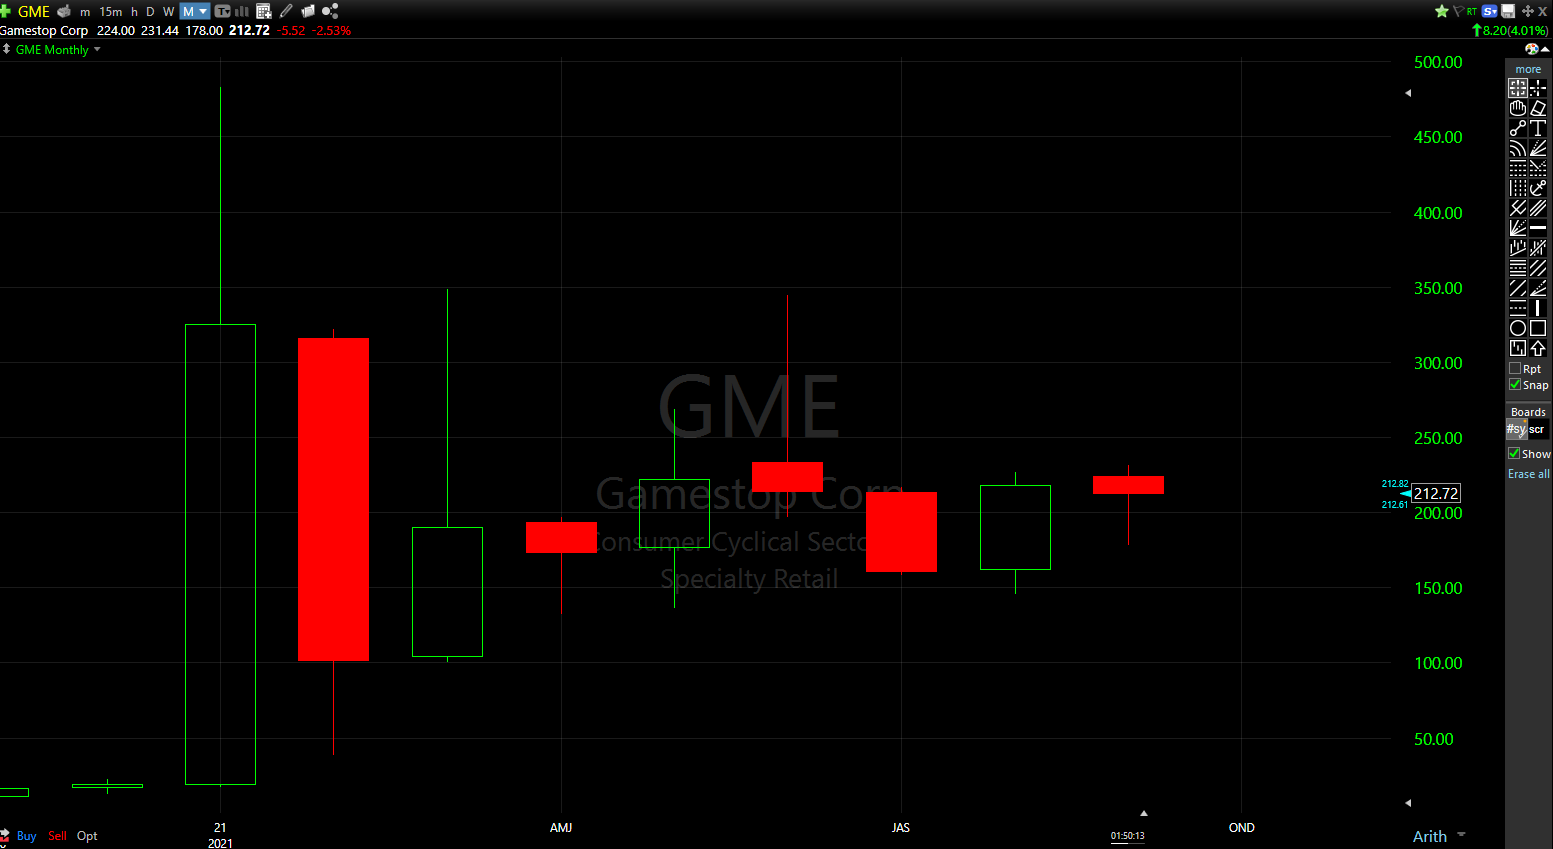 GameStop (GME) shares have had a wild ride in 2021. This monthly chart highlights the volatile moves of the past year.